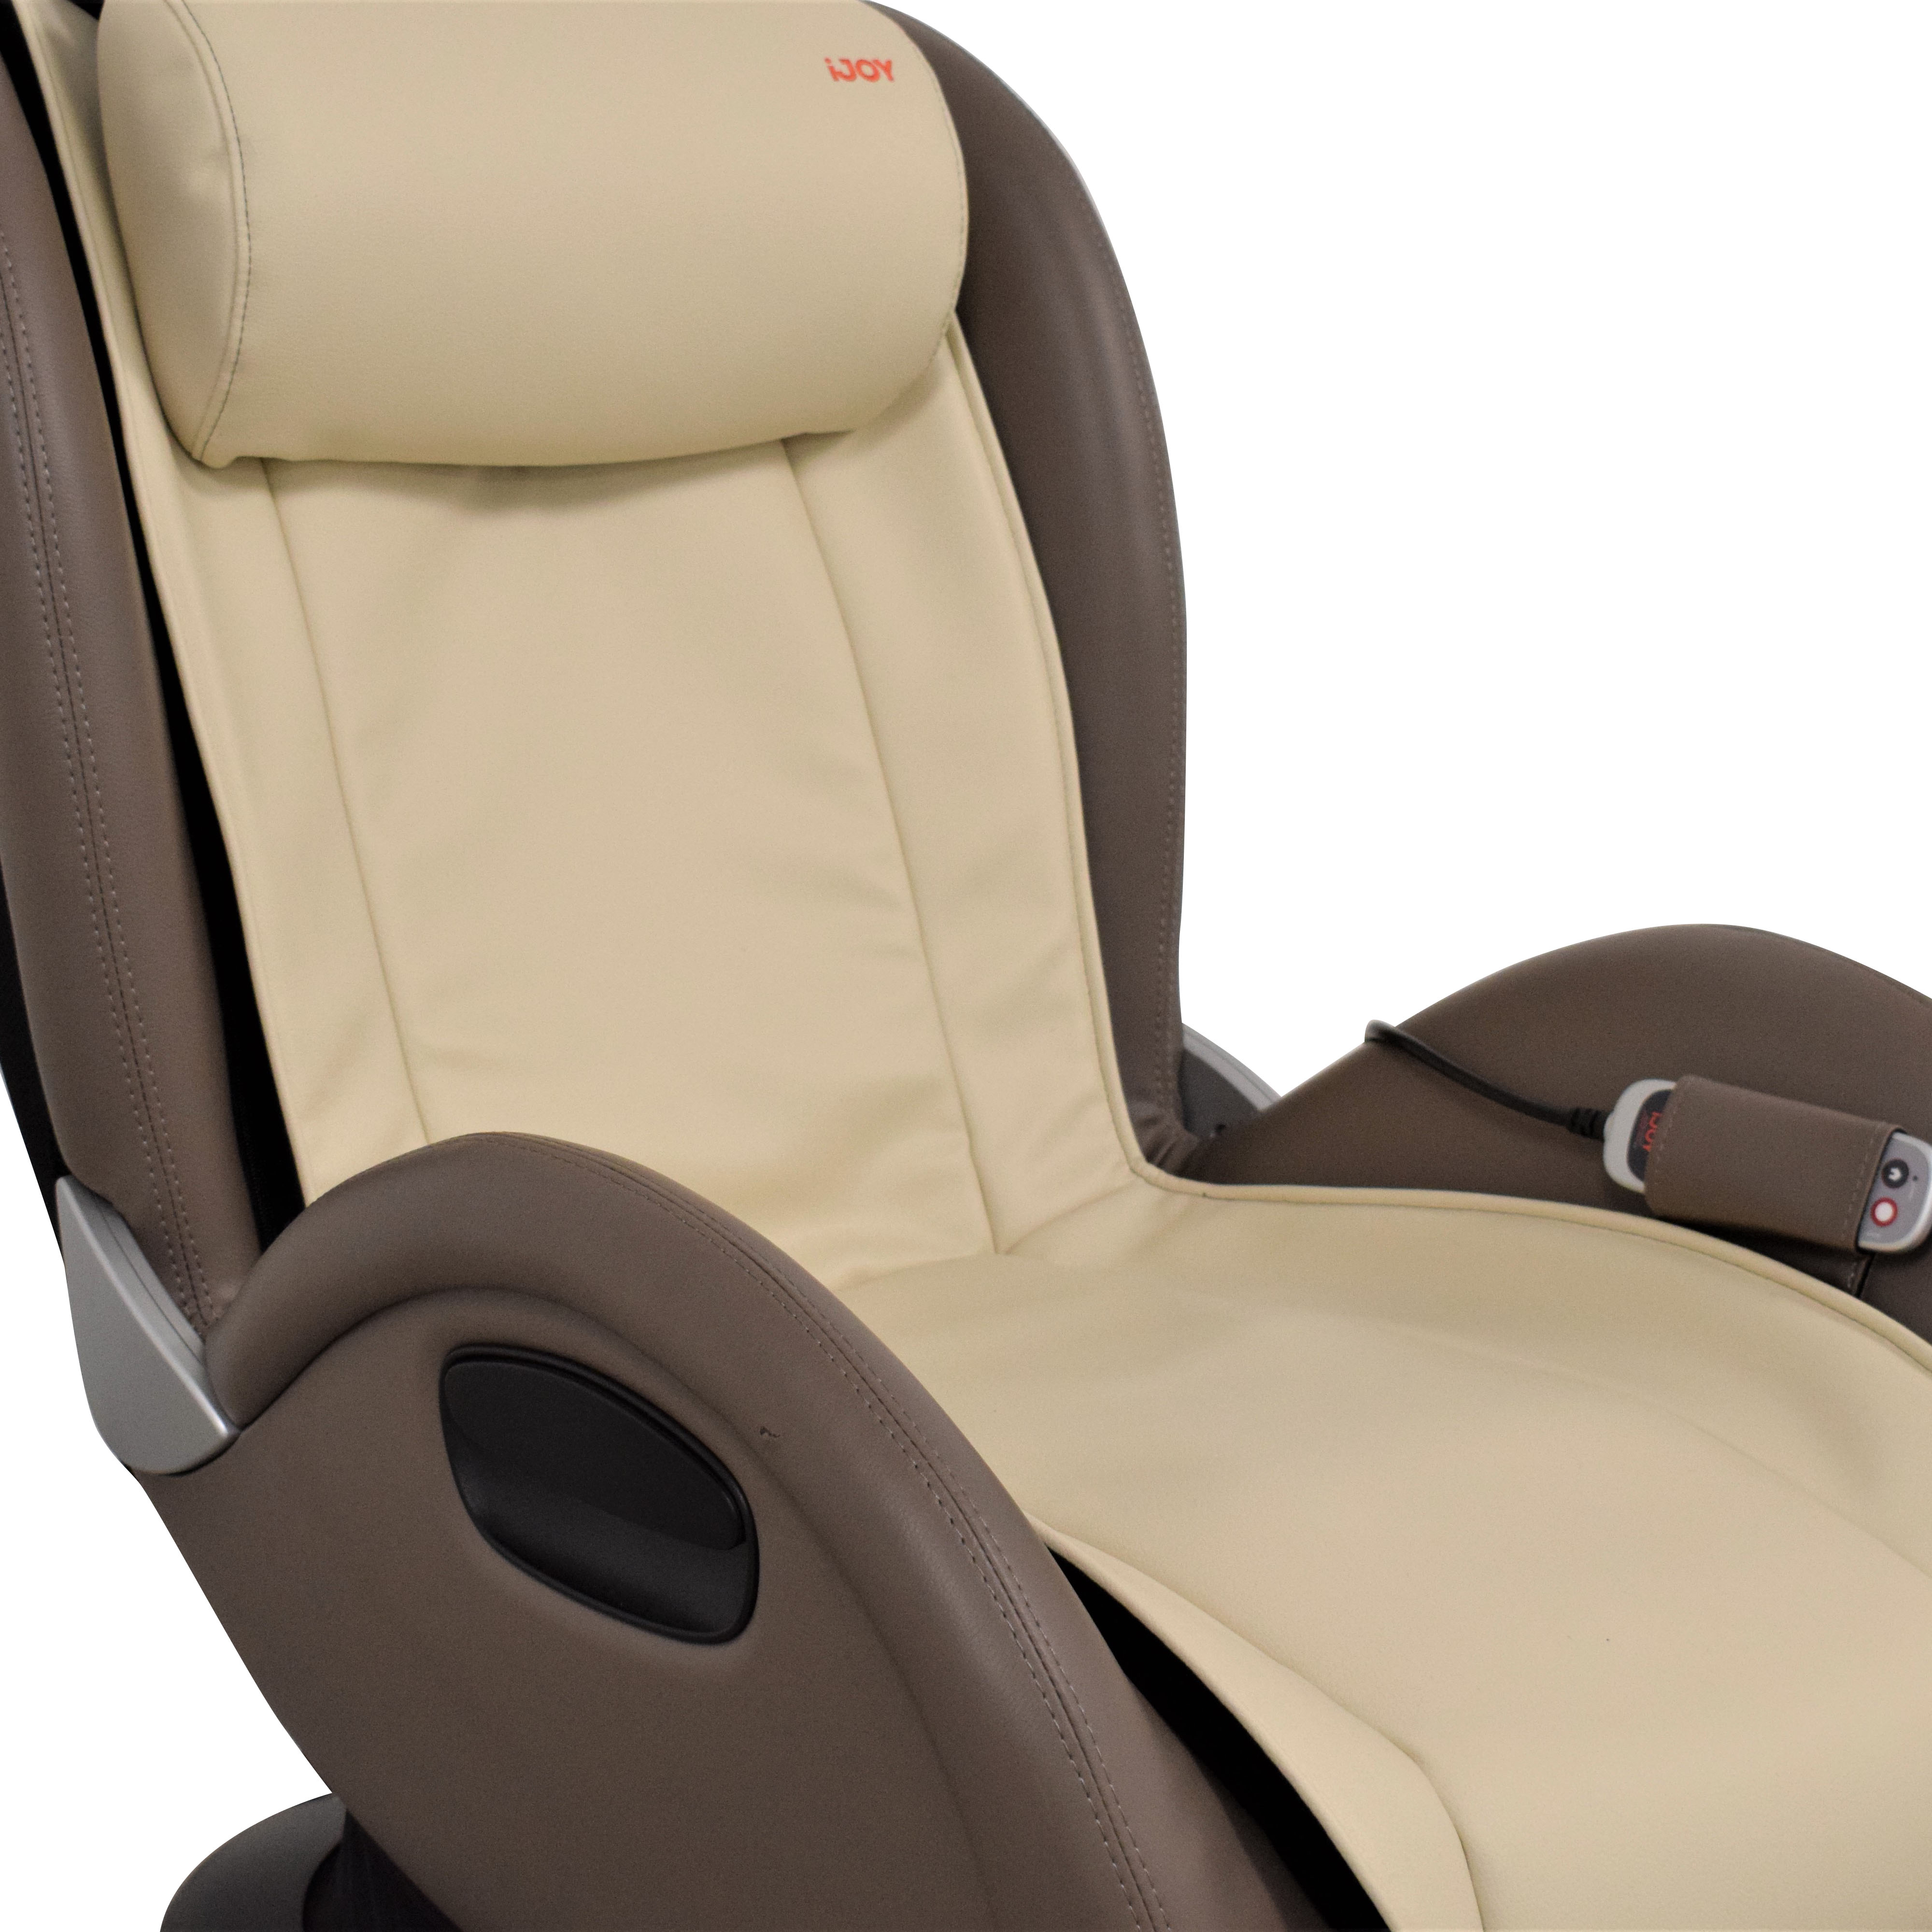 Human Touch Human Touch iJOY Massage Chair 4.0 tan and grey